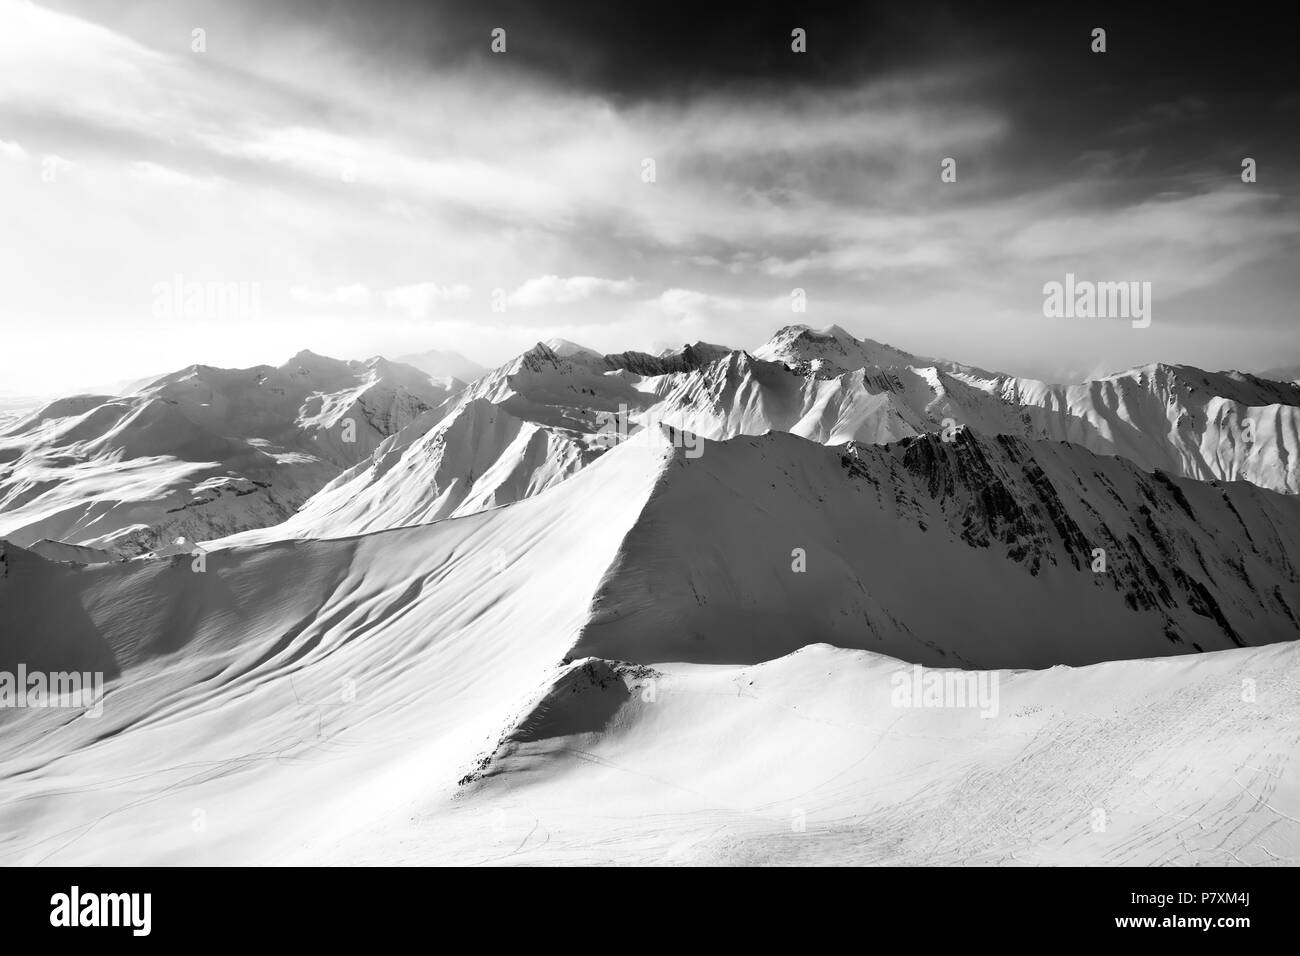 Black and white snowy off-piste slope and sunlight sky. Caucasus Mountains, Georgia, region Gudauri in winter. Wide angle view. - Stock Image